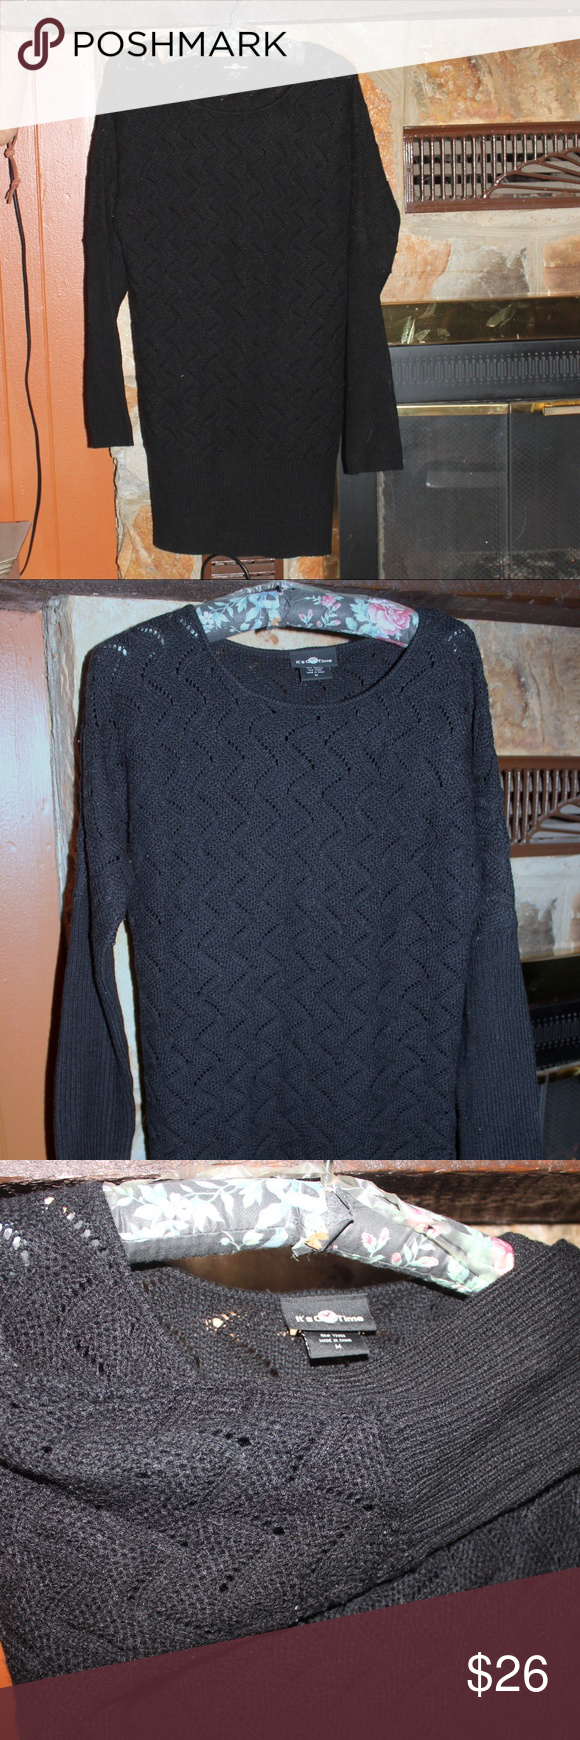 sweater Dress Sweater Dress - Black - 100% Acrylic - warm and comfortable - cute with boots - banded at cuff  and around hem Dresses Long Sleeve